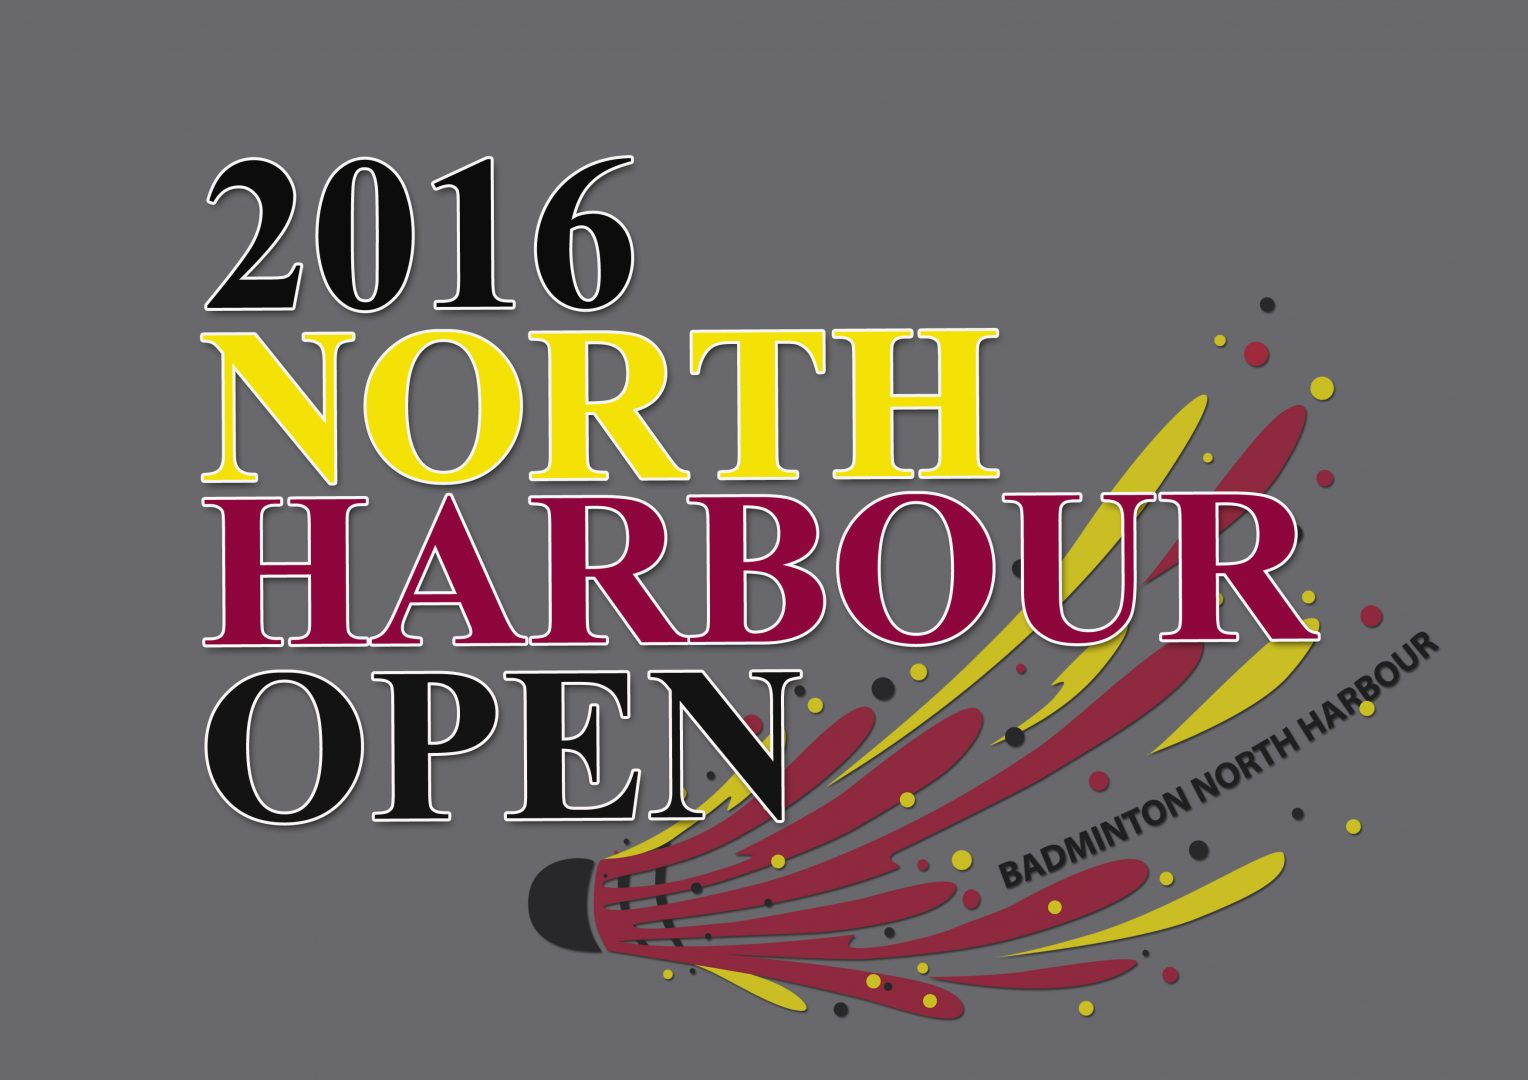 North Island/North Harbour Open 2016